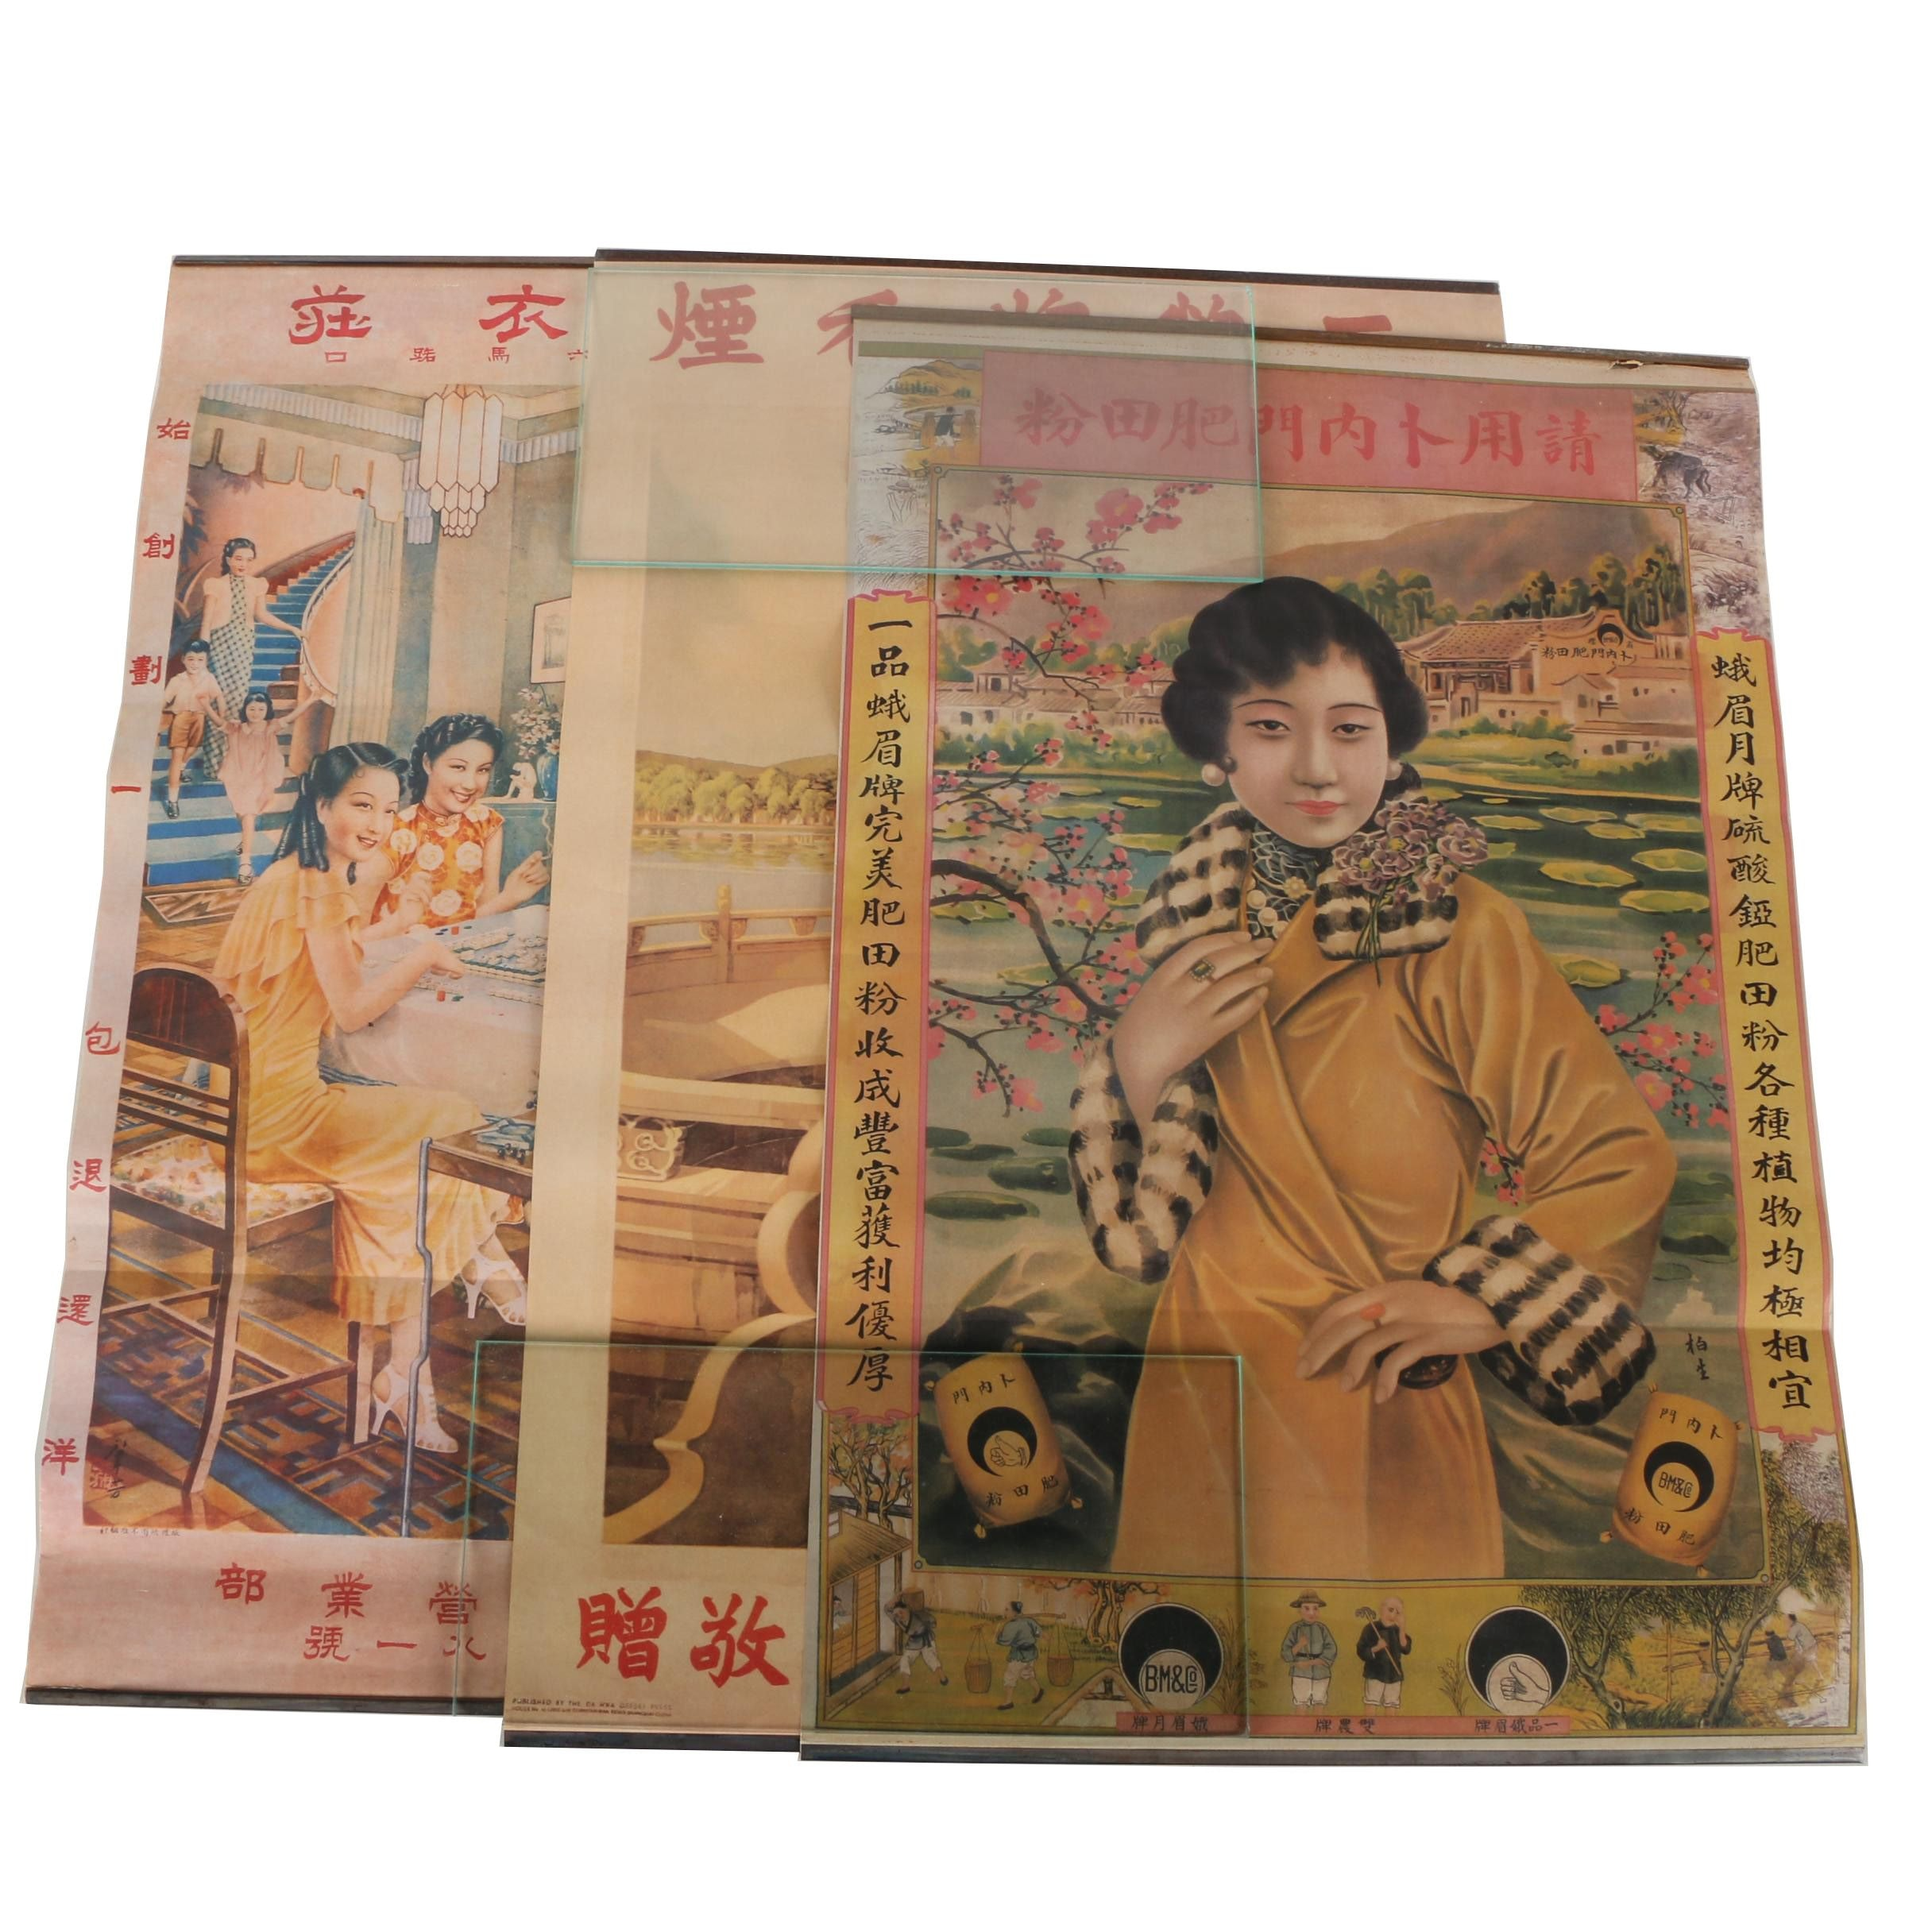 Vintage Chinese Offset Lithograph Posters on Paper of Women